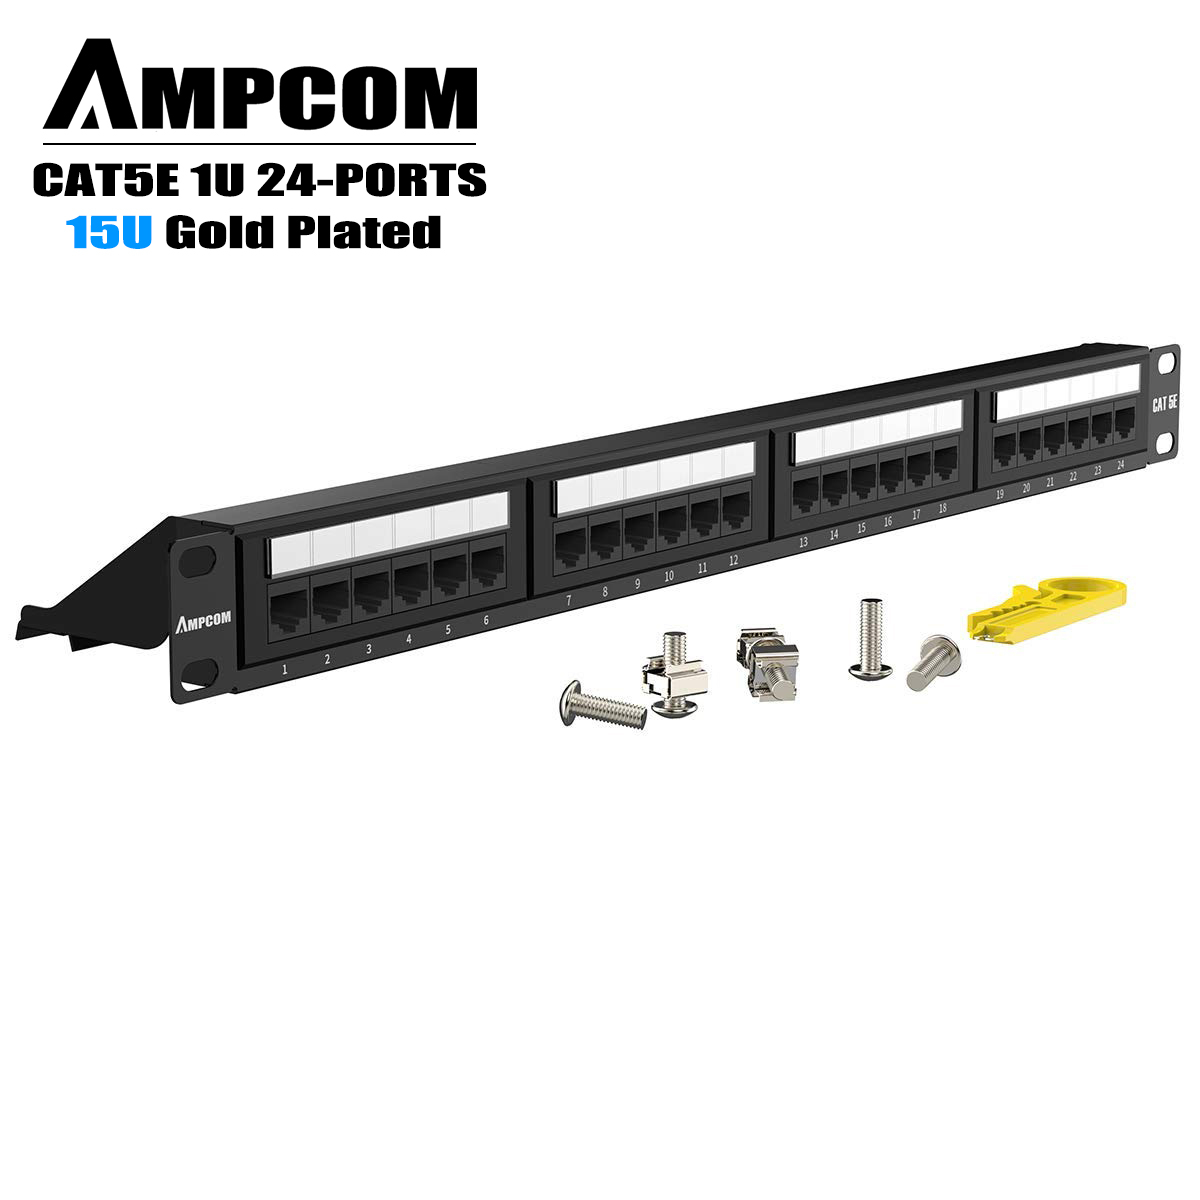 AMPCOM Premium Series CAT5/5e 24 Ports Patch Panel, Rack Mount - 1U, 19 Inch, RJ45 Ethernet 568A 568B, 15u Gold Plated